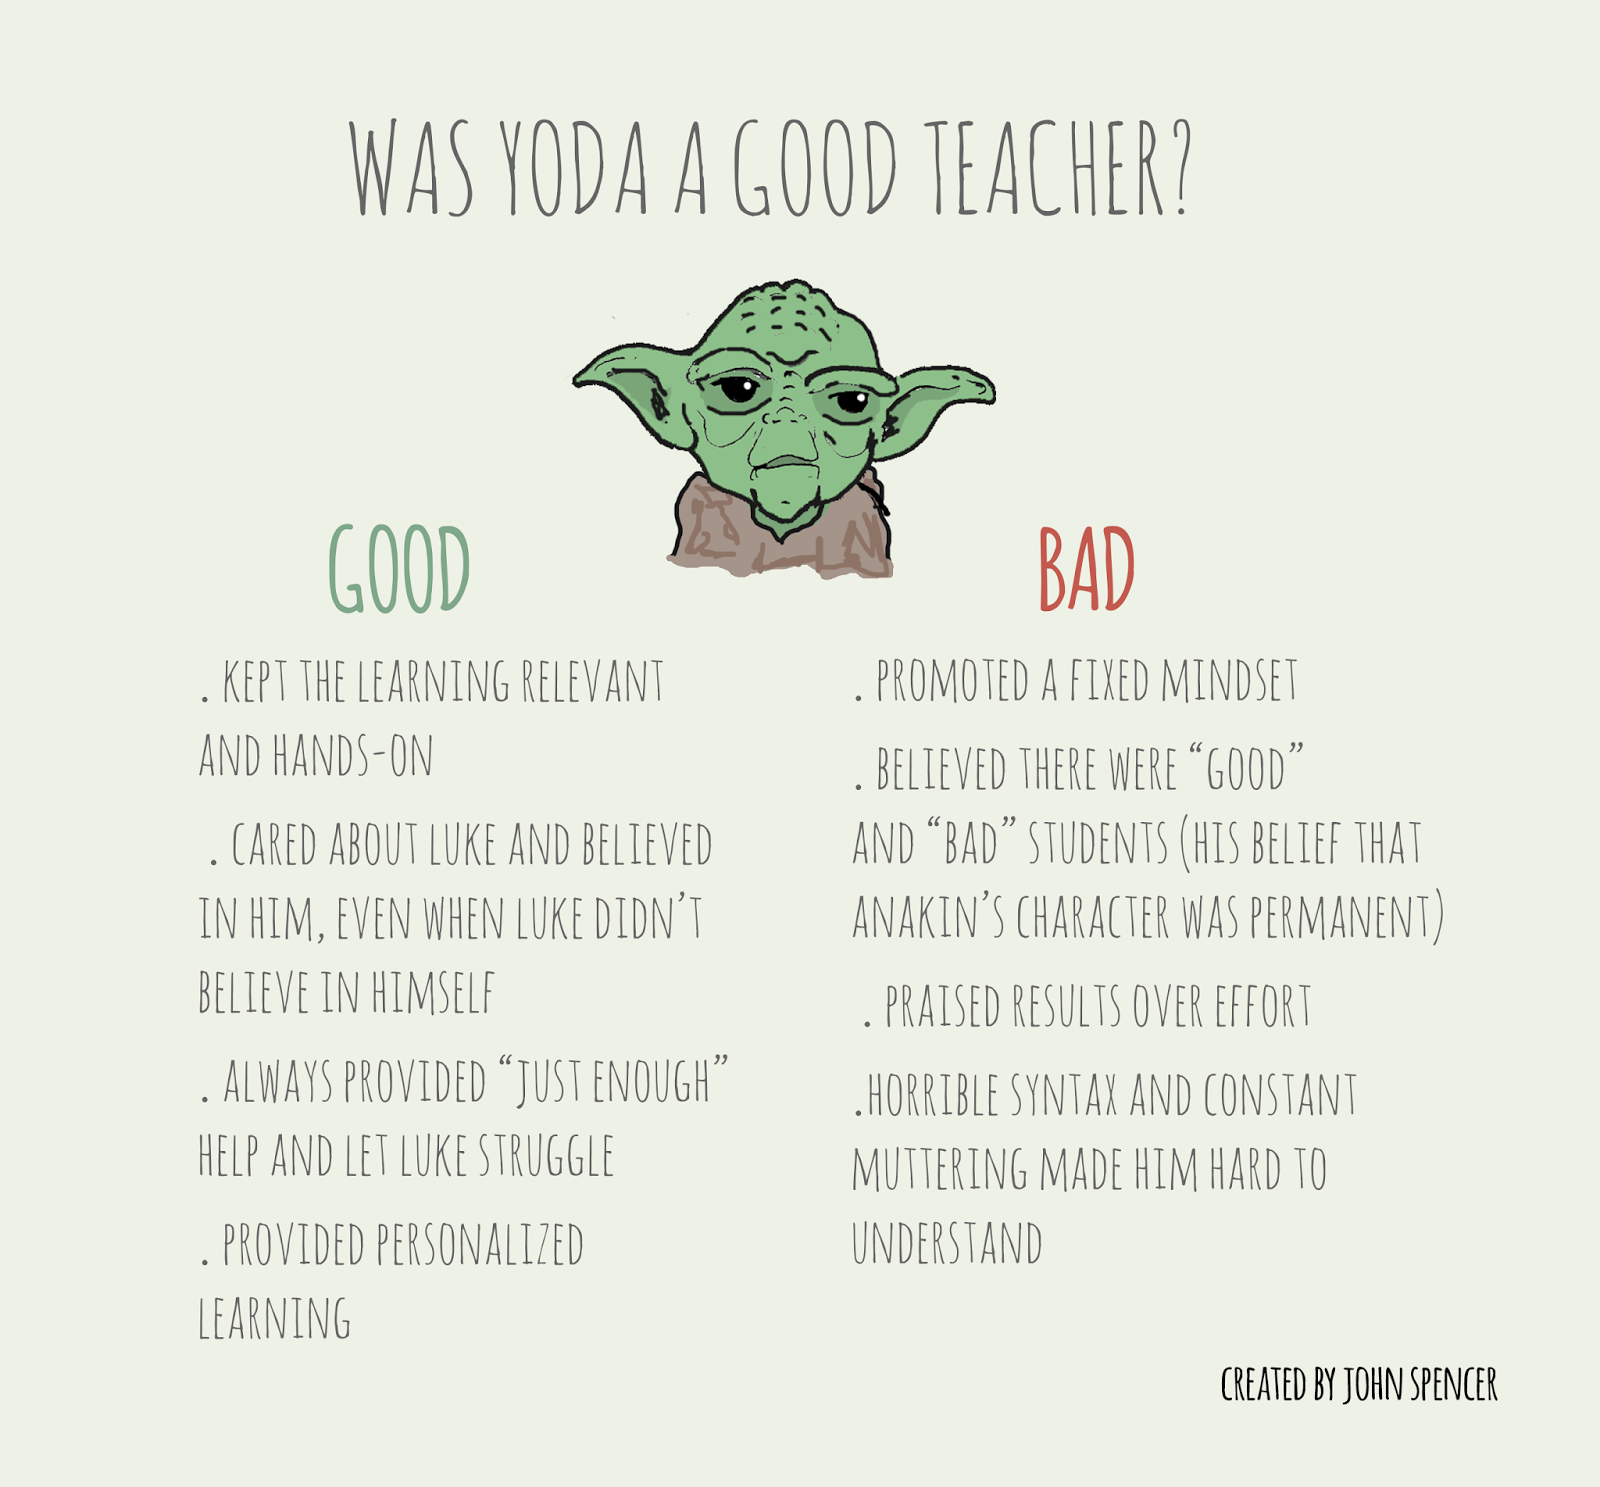 good teacher essay good person essay how to write a good  was yoda a good teacher john spencer why yoda was an bad teacher